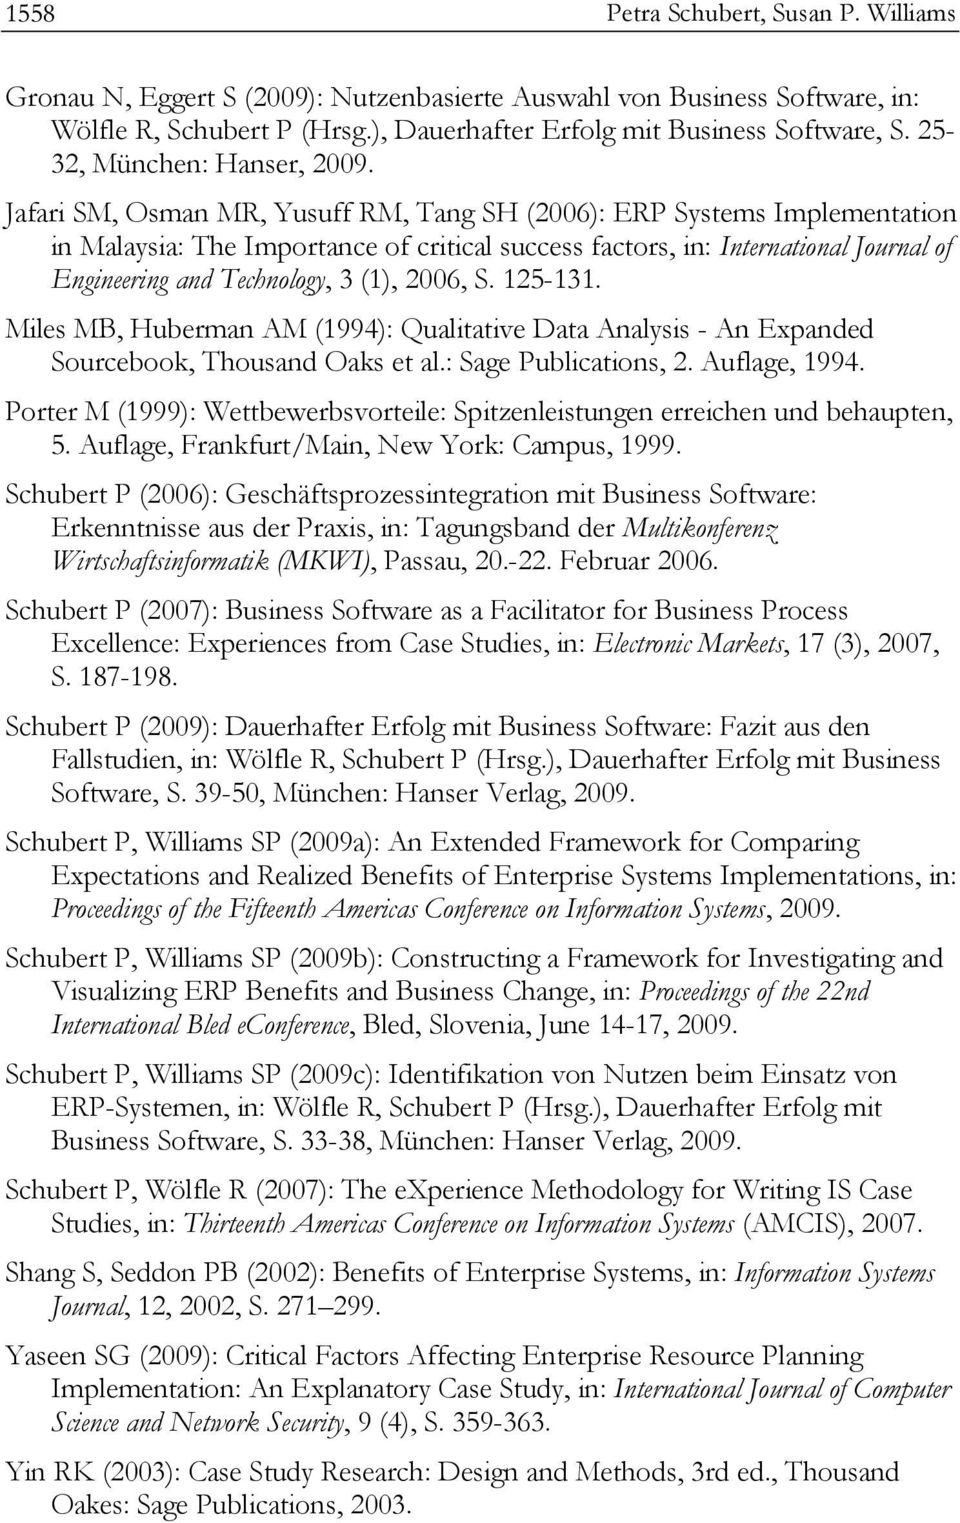 Jafari SM, Osman MR, Yusuff RM, Tang SH (2006): ERP Systems Implementation in Malaysia: The Importance of critical success factors, in: International Journal of Engineering and Technology, 3 (1),